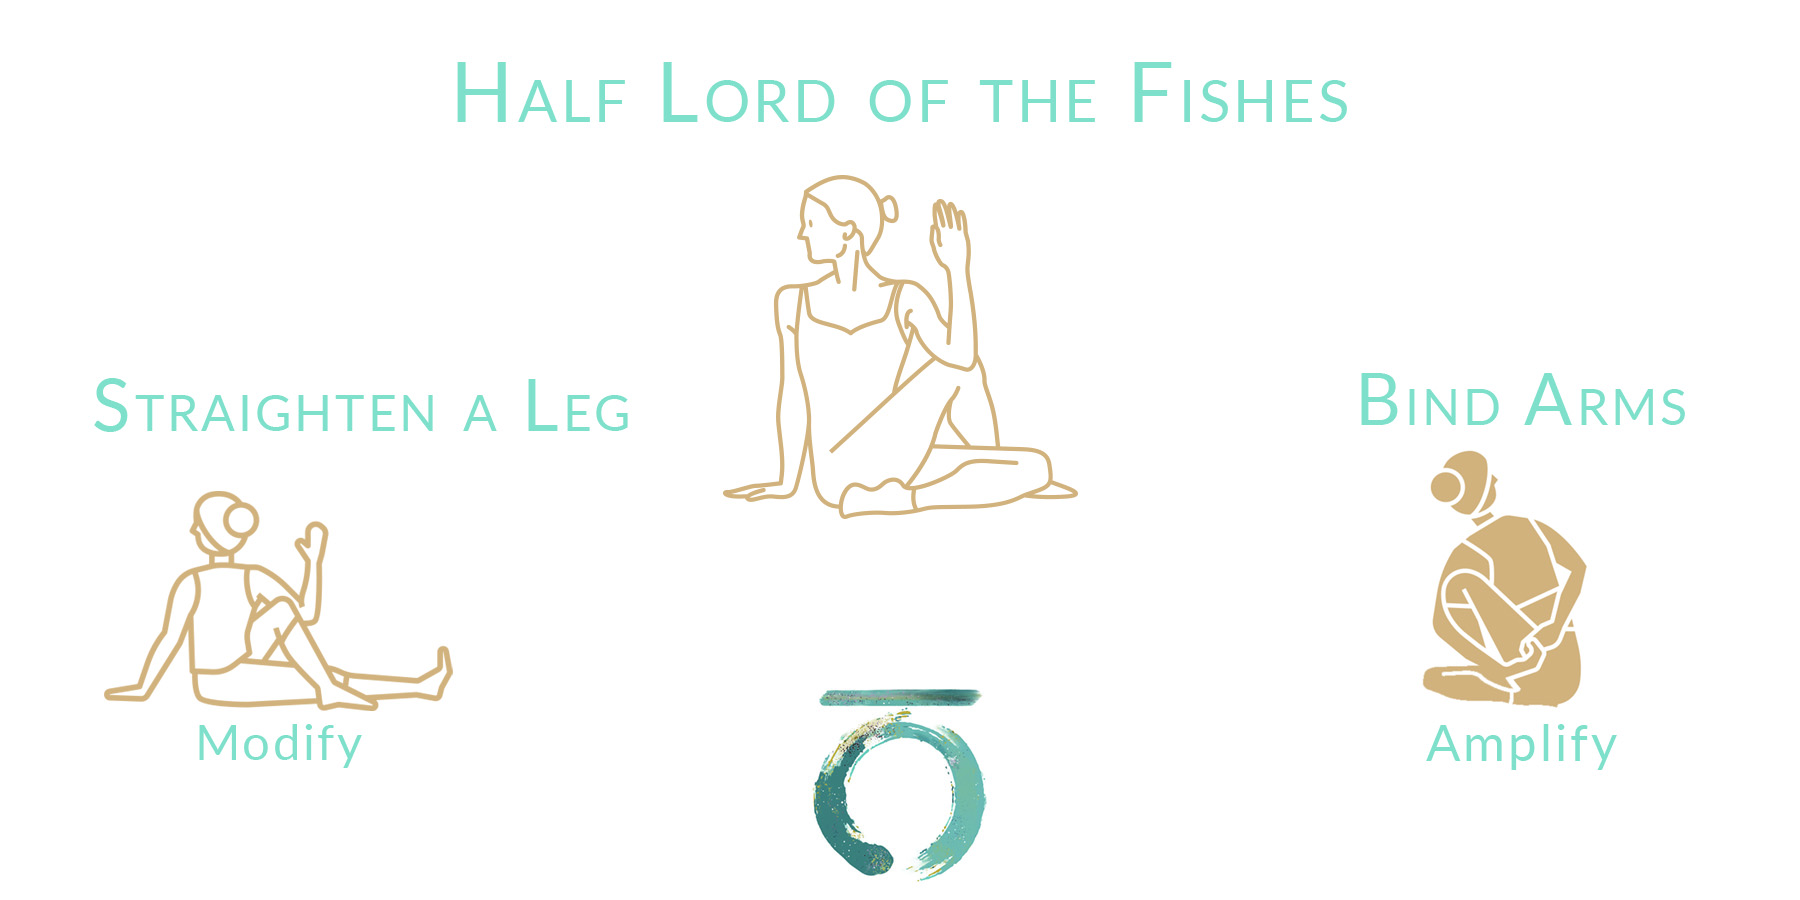 Half Lord of the Fishes Twist Blog Travel Yoga